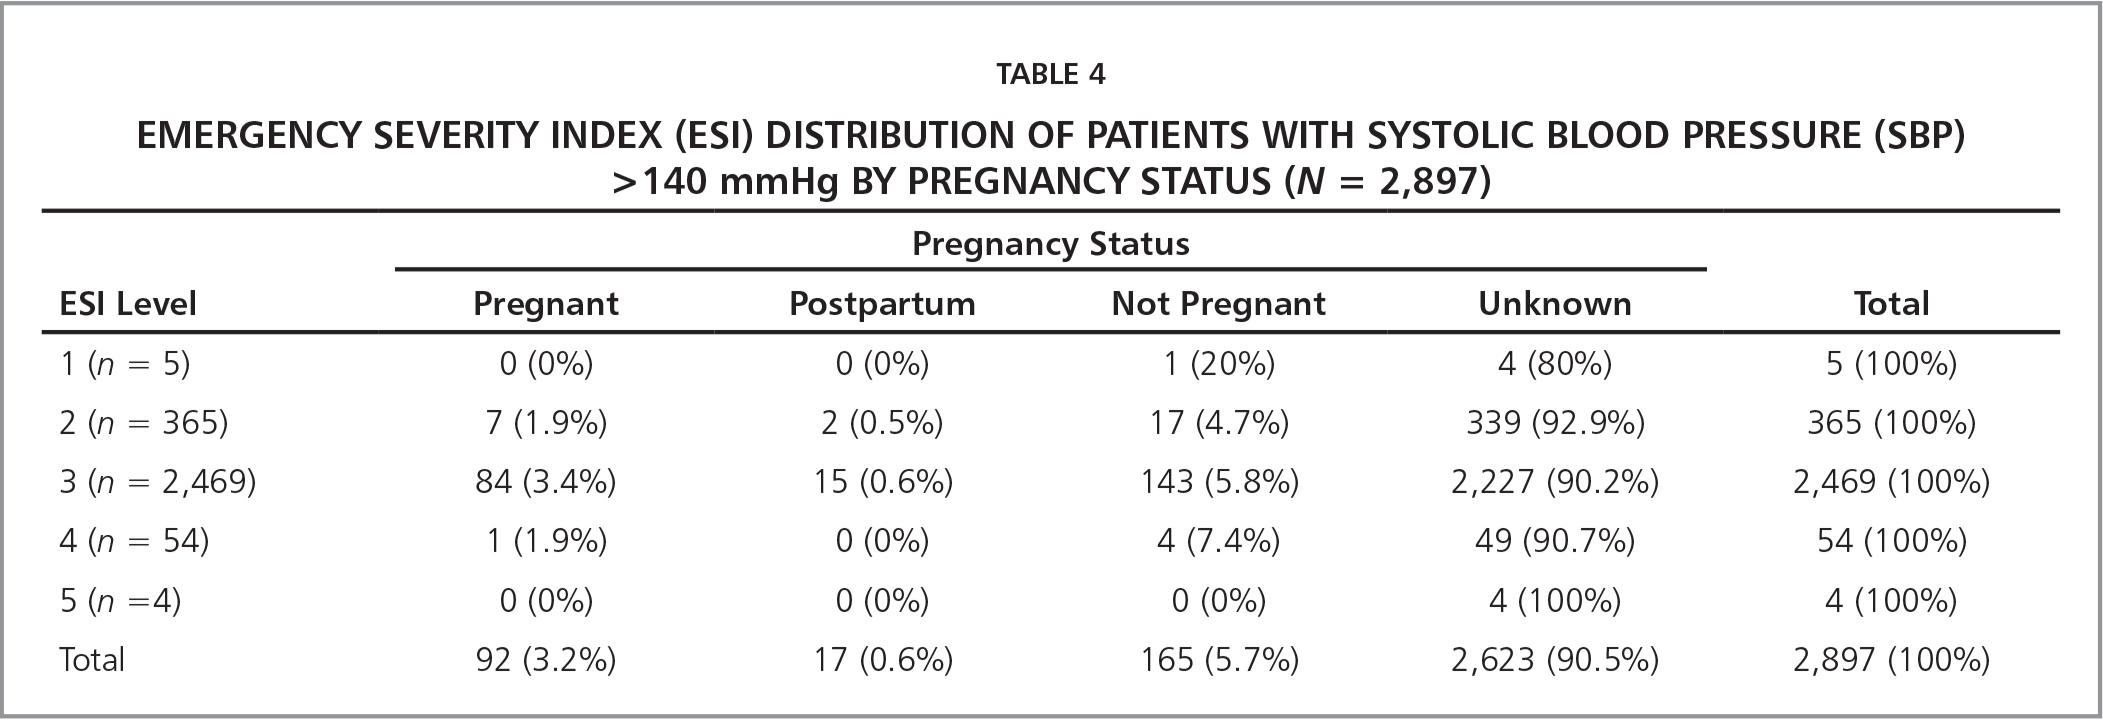 Emergency Severity Index (ESI) Distribution of Patients With Systolic Blood Pressure (SBP) >140 mmhg by Pregnancy Status (N = 2,897)